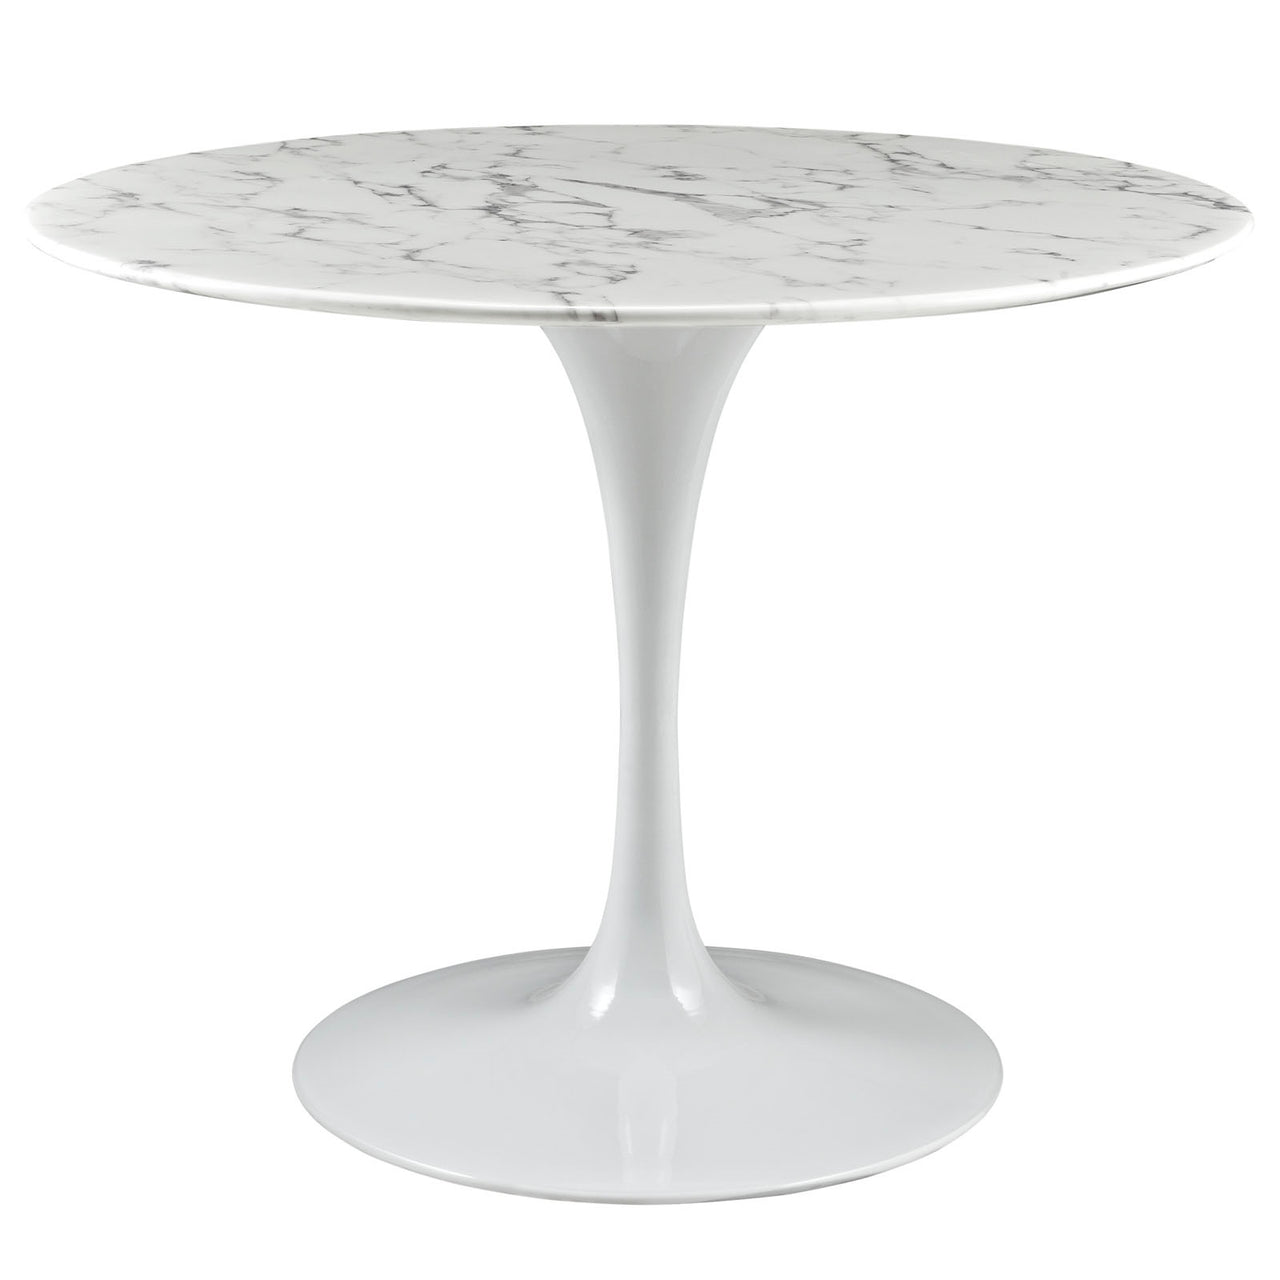 "Lola 40"" Round Artificial Marble Dining Table in White"